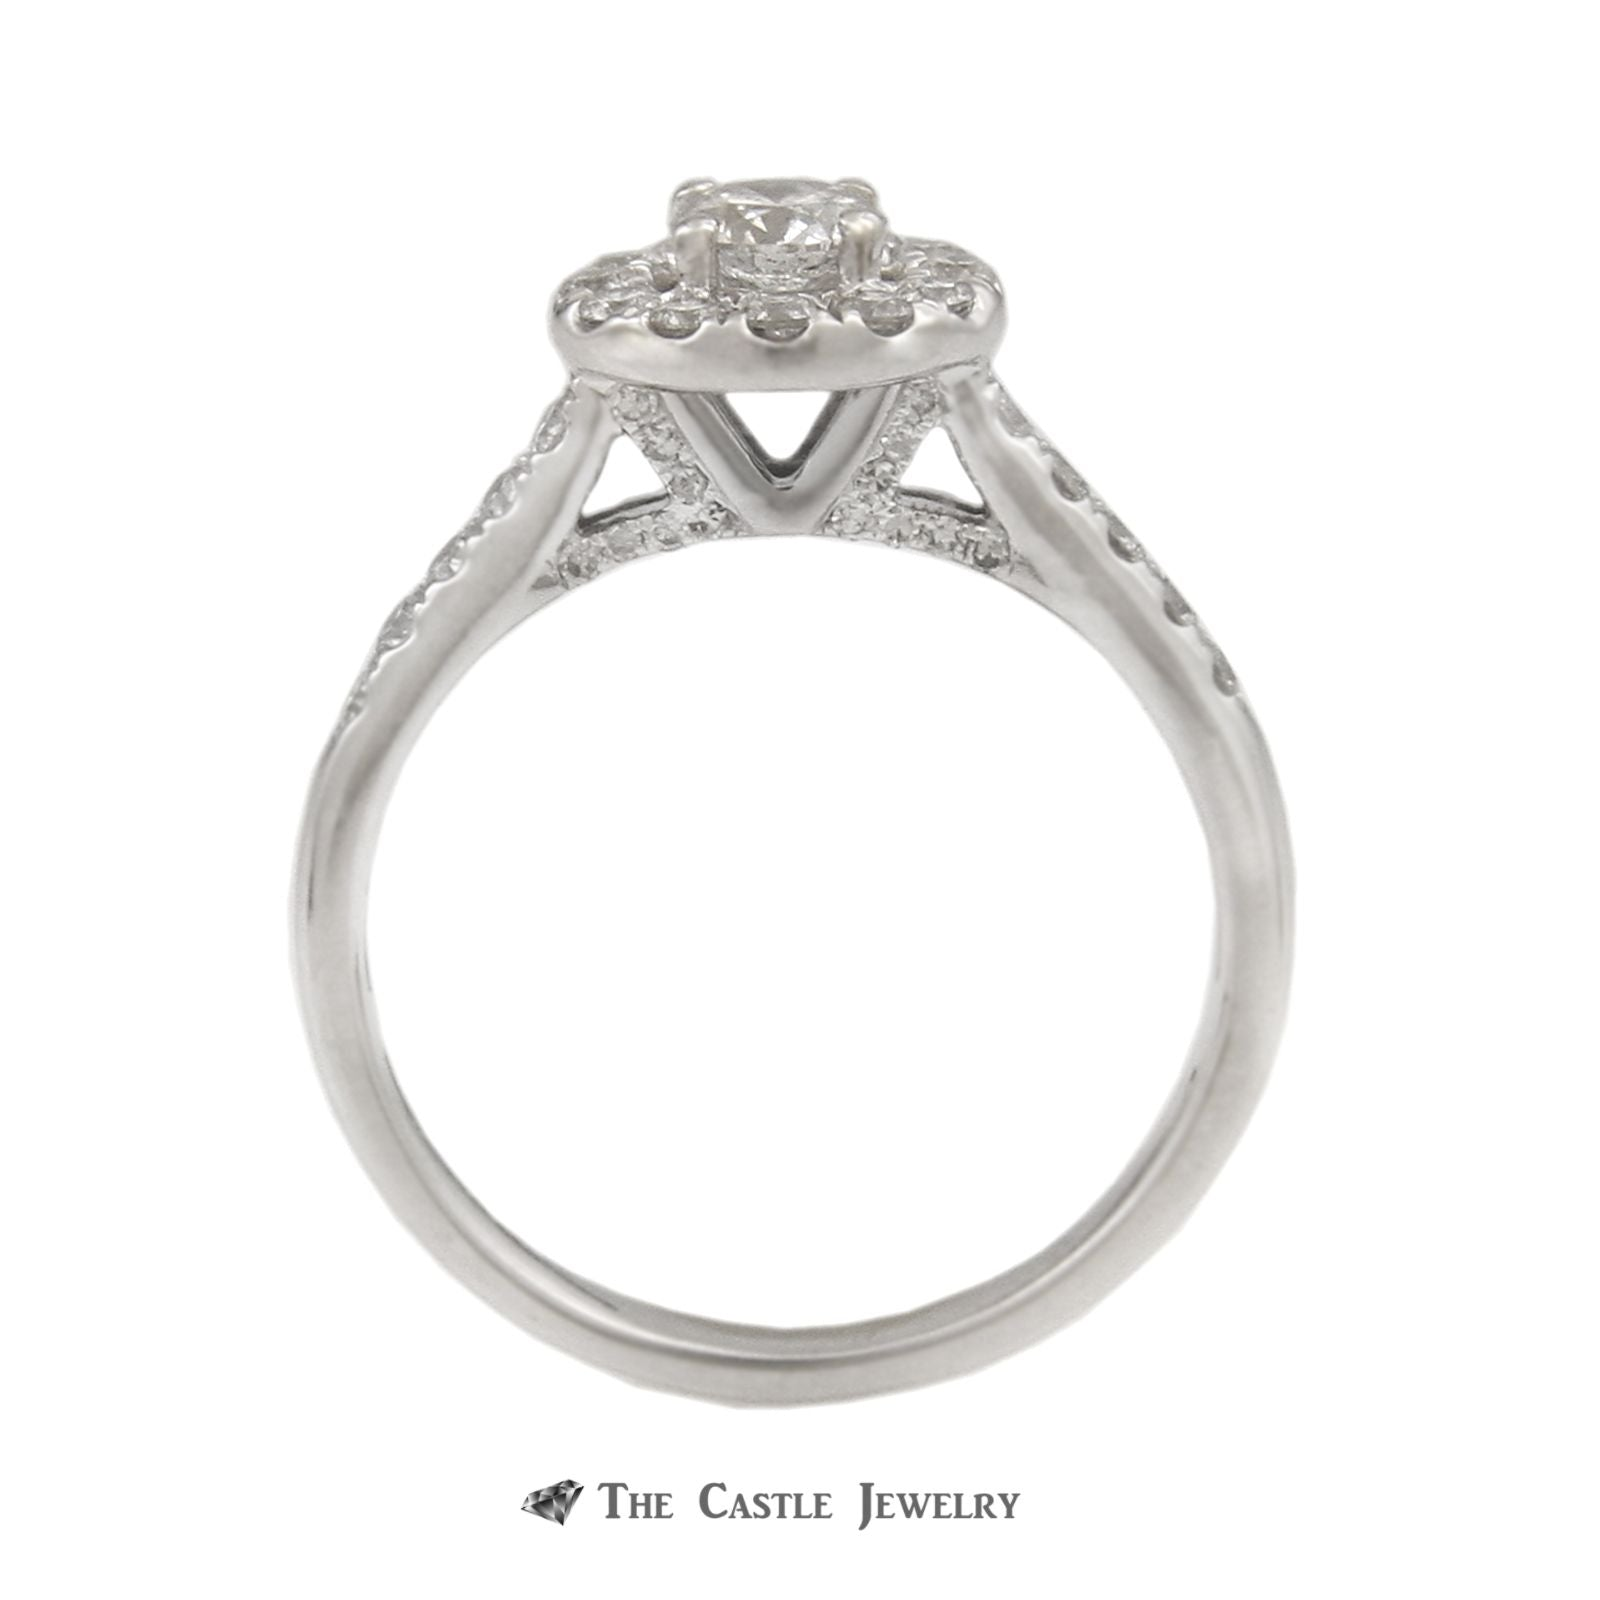 Crown Collection 1cttw Bridal Set w/ Round Center in Diamond Halo & Diamond Sides in 14k-1